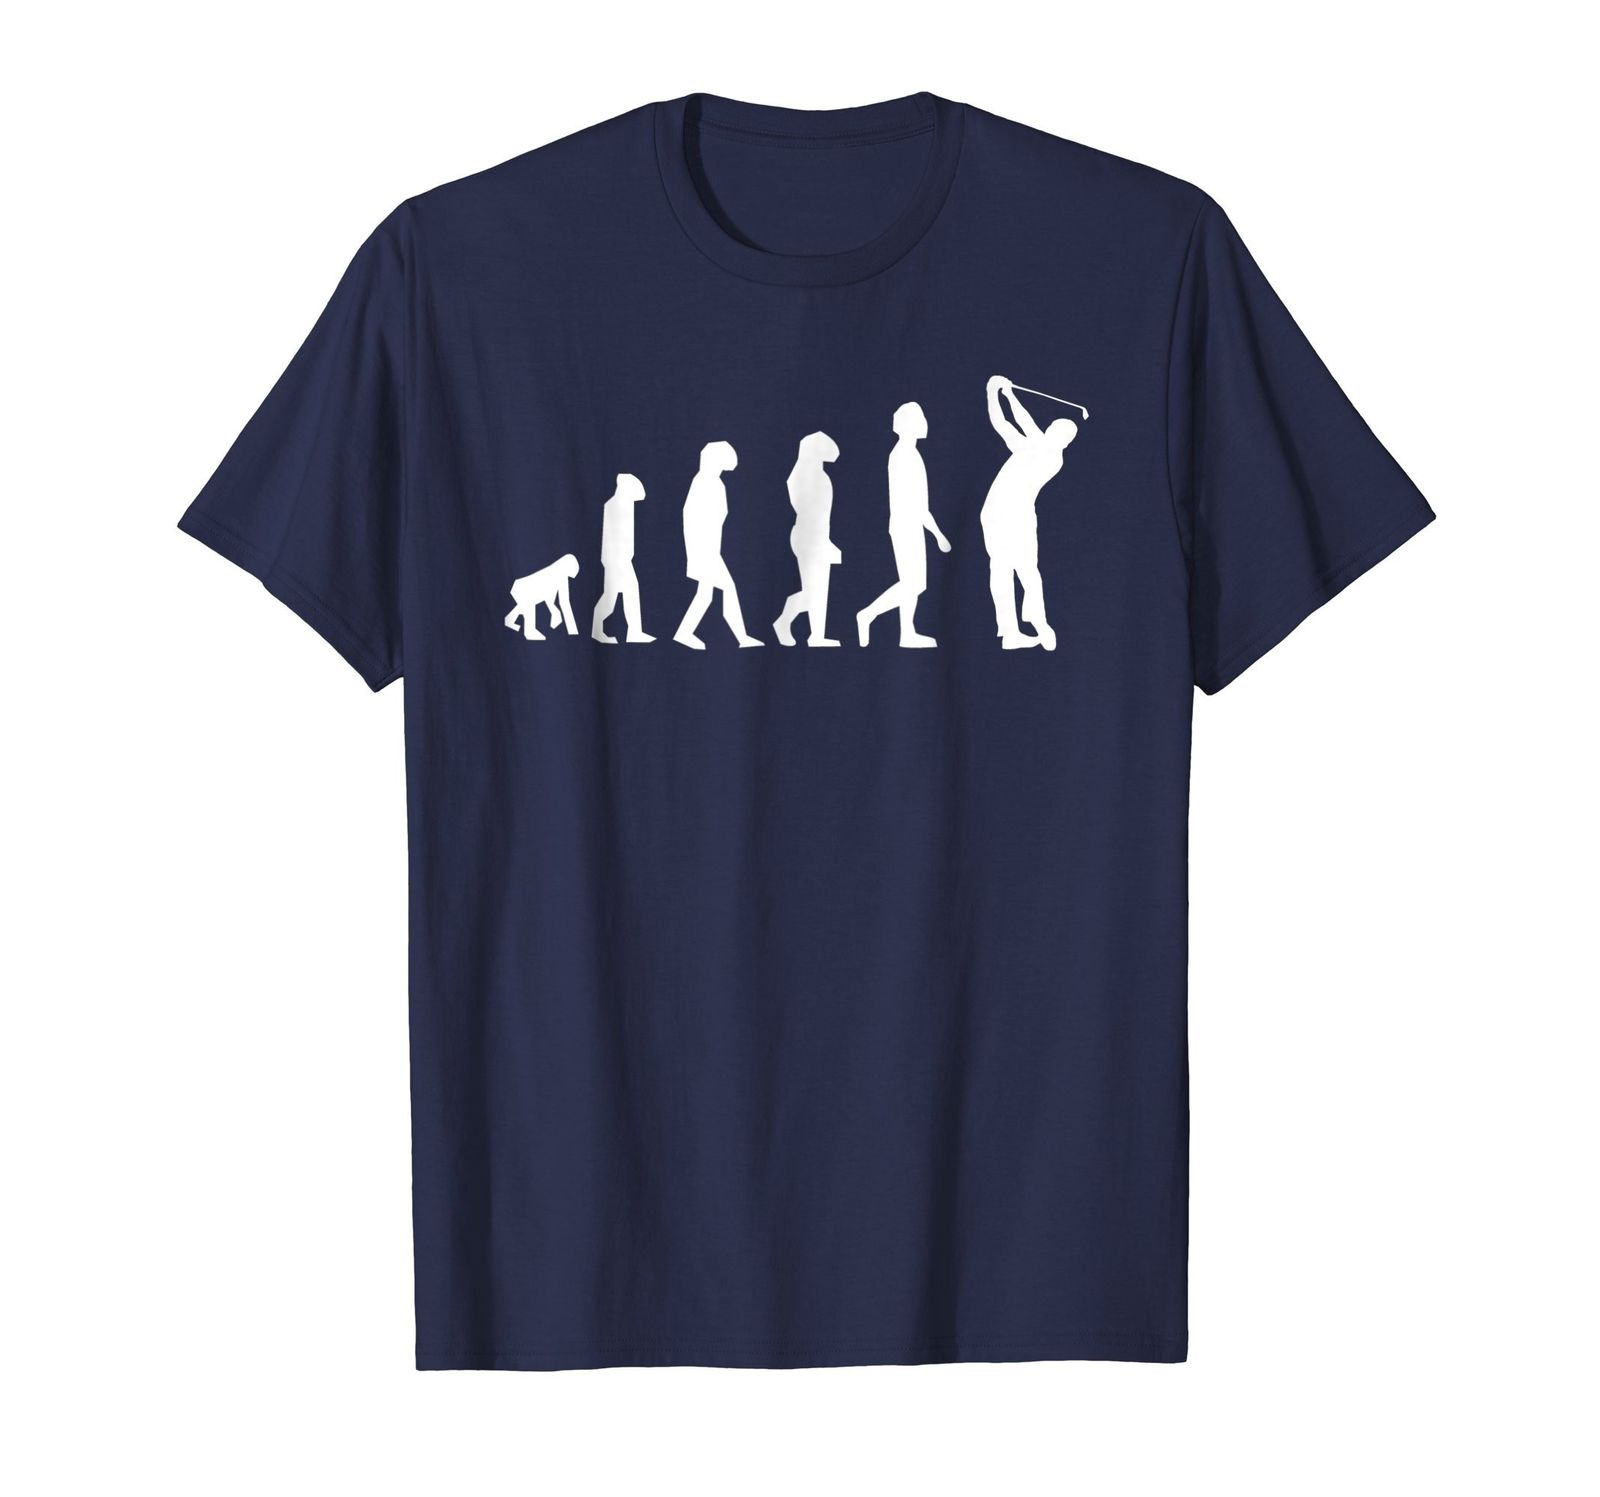 Mens Evolution Golfer Funny Golf Golfing Fathers Day T Shirt 2XL Navy Fresh Design Summer Good Quality shirts